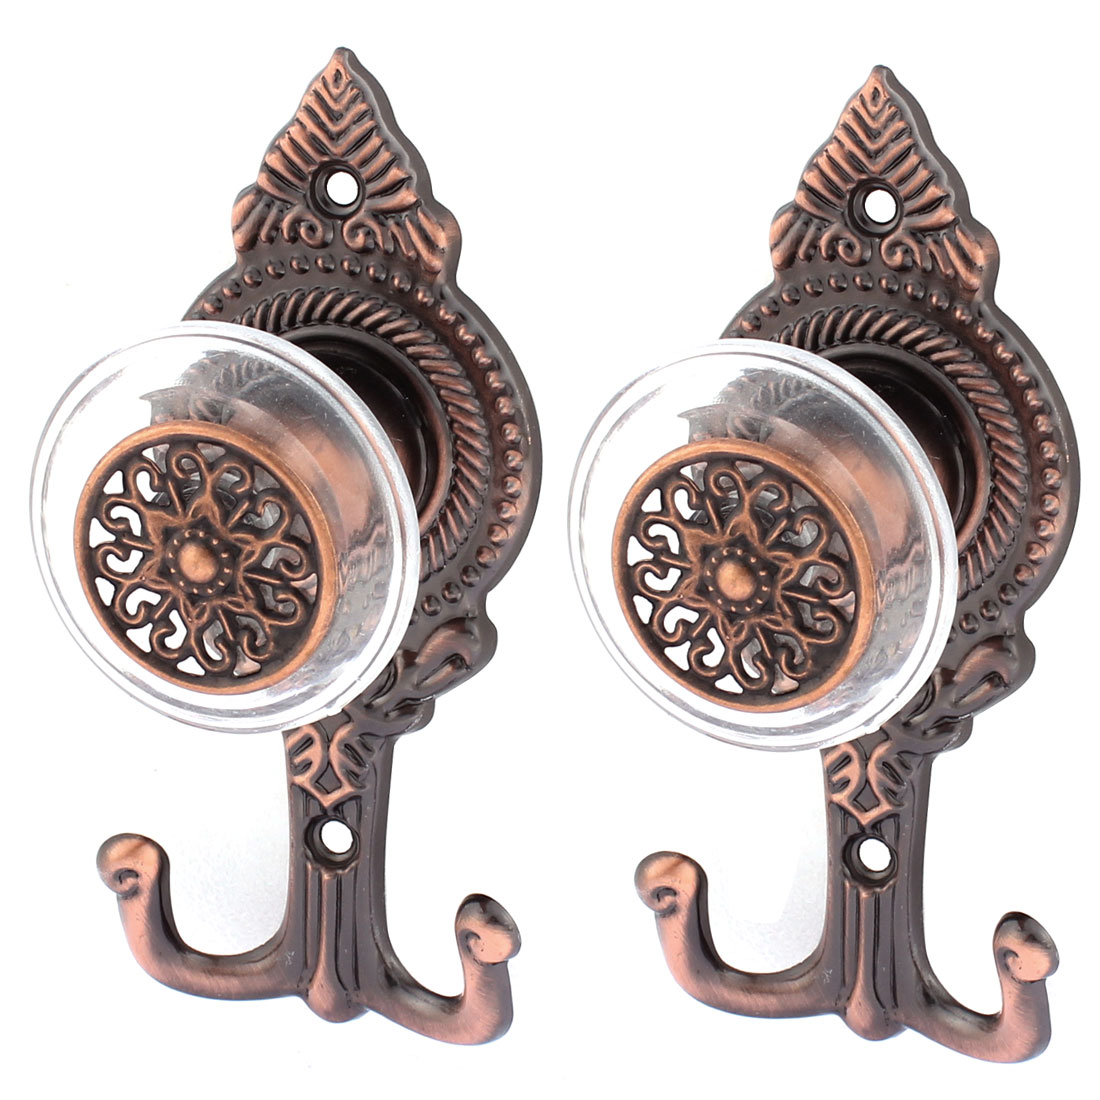 2Pcs Vintage Style Drapery Curtain Tassel Wall Hook Holder Hookback Tieback Copper Tone